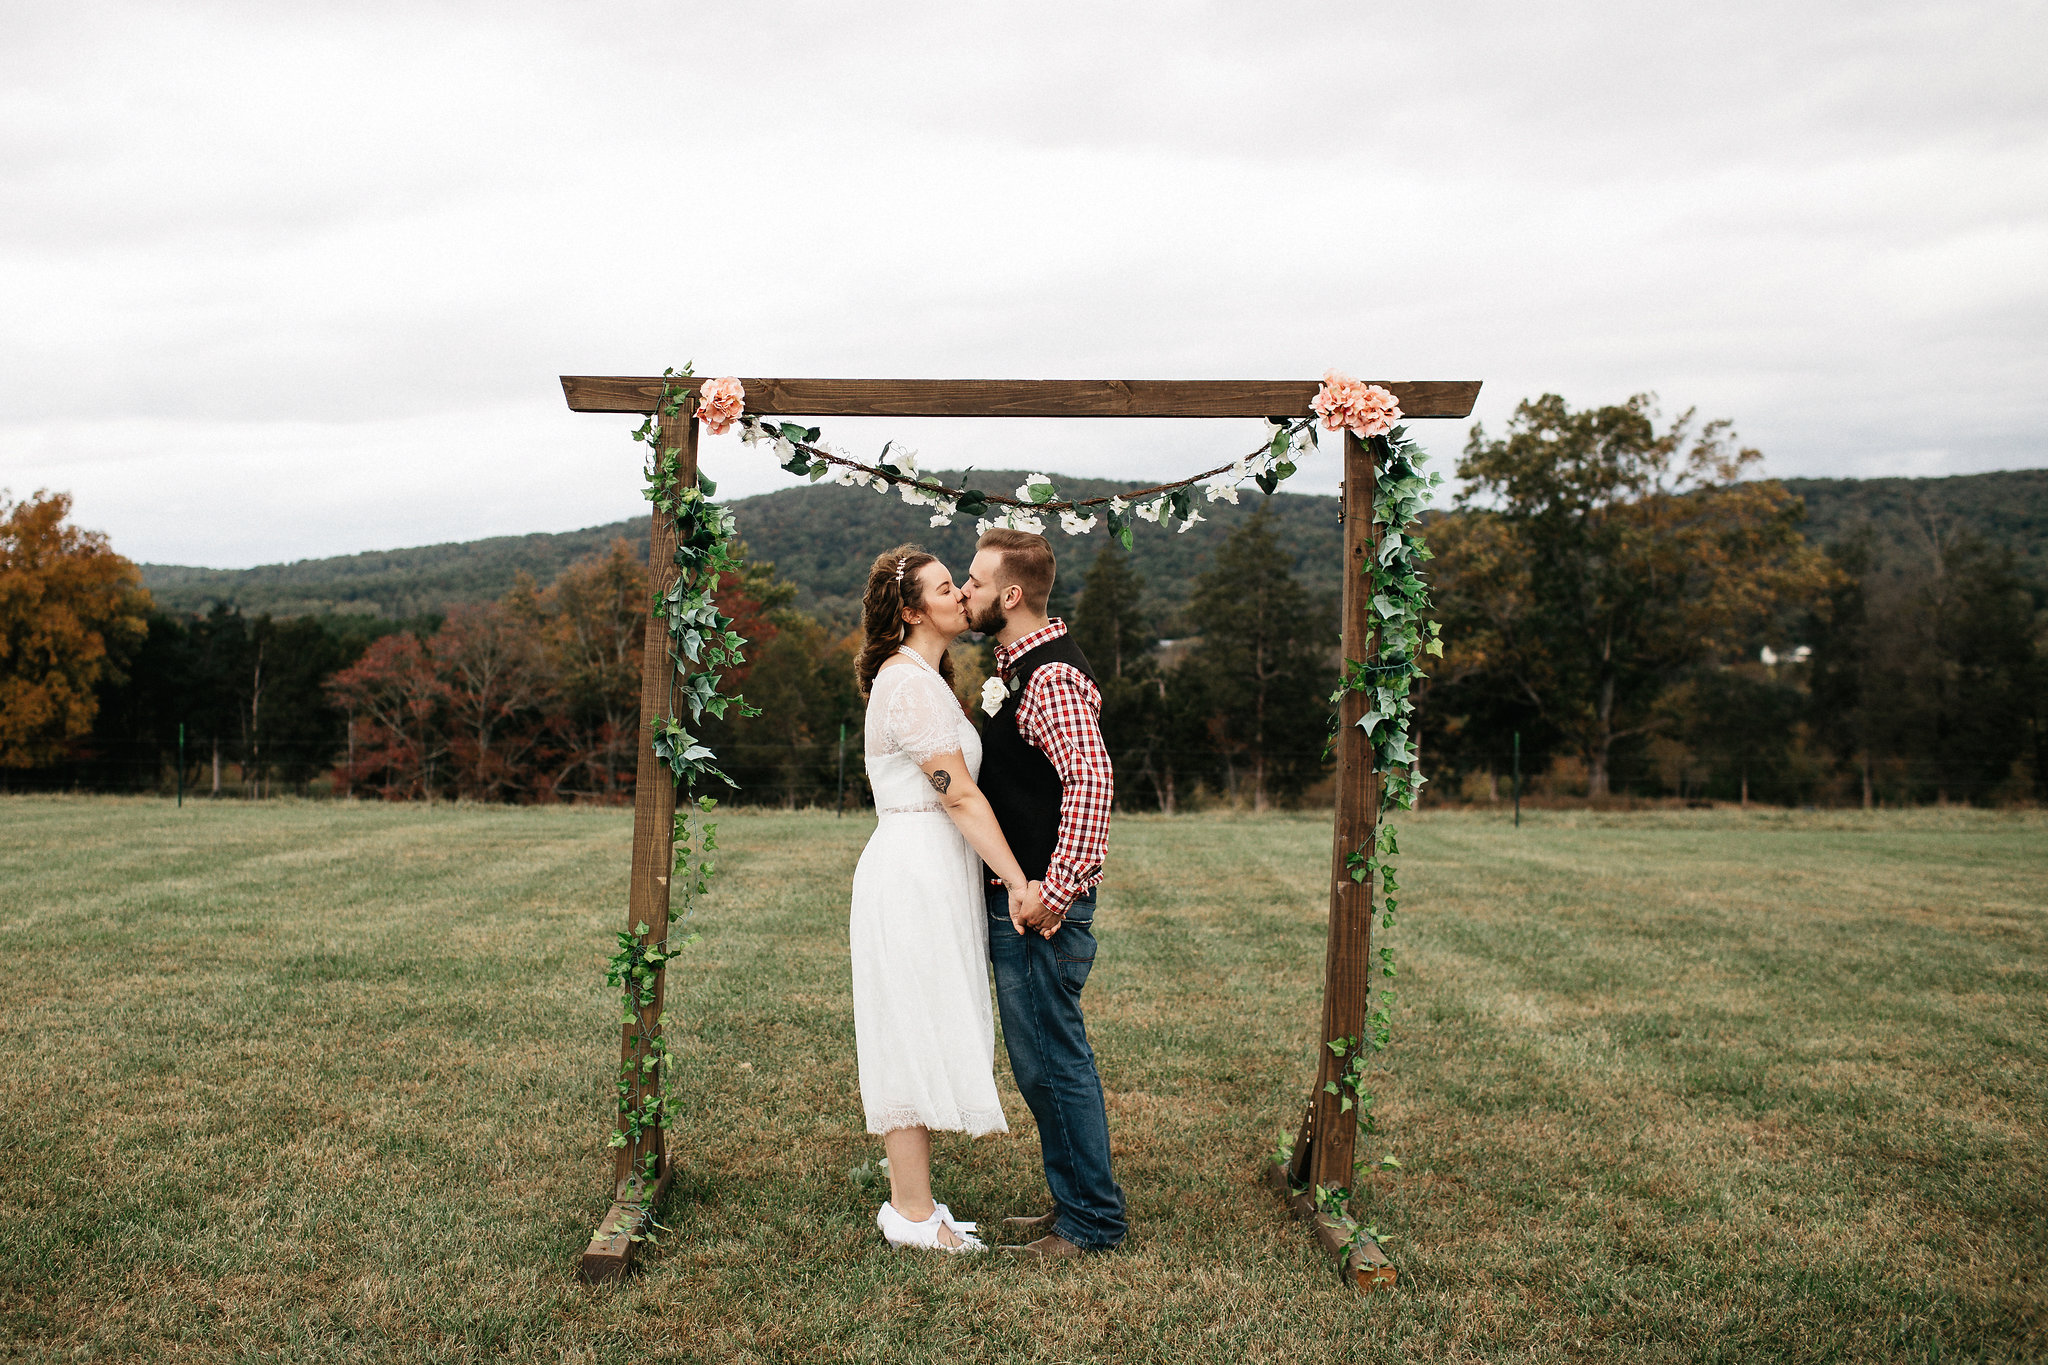 Caitlin&CodyMarried2017-11-03at19.19.40PM34.jpg